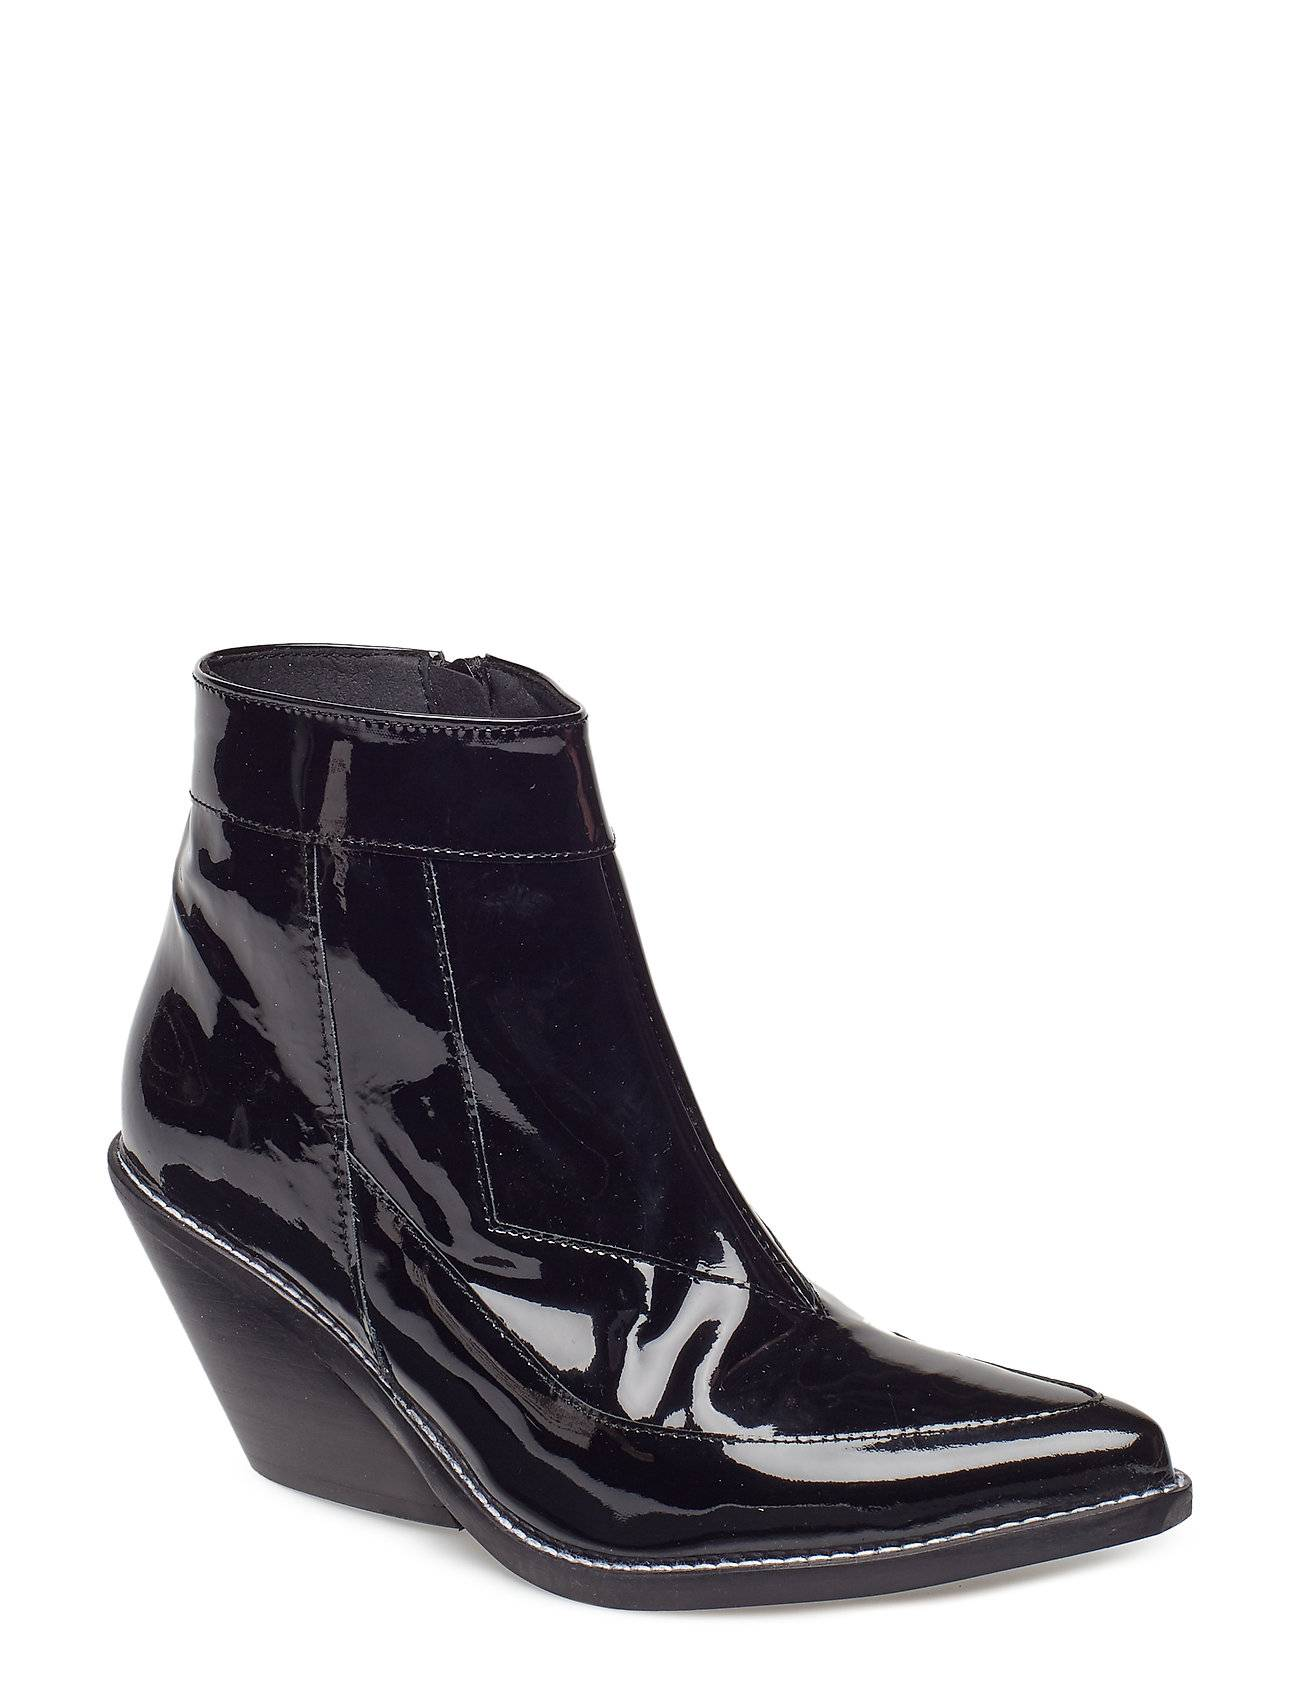 Henry Kole Evie Shoes Boots Ankle Boots Ankle Boots With Heel Musta Henry Kole